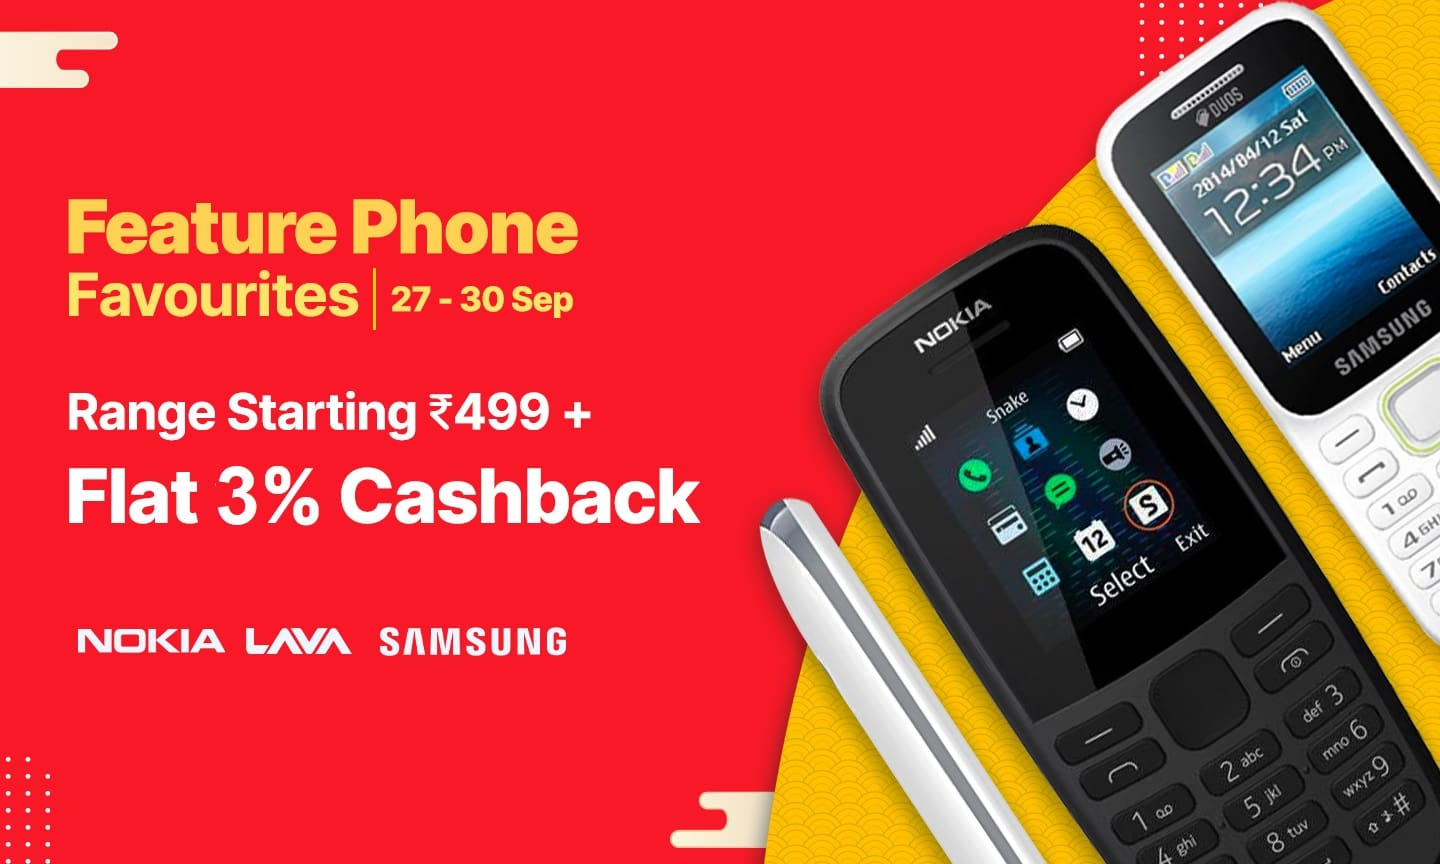 Feature Phone Sale 27-30 Sep